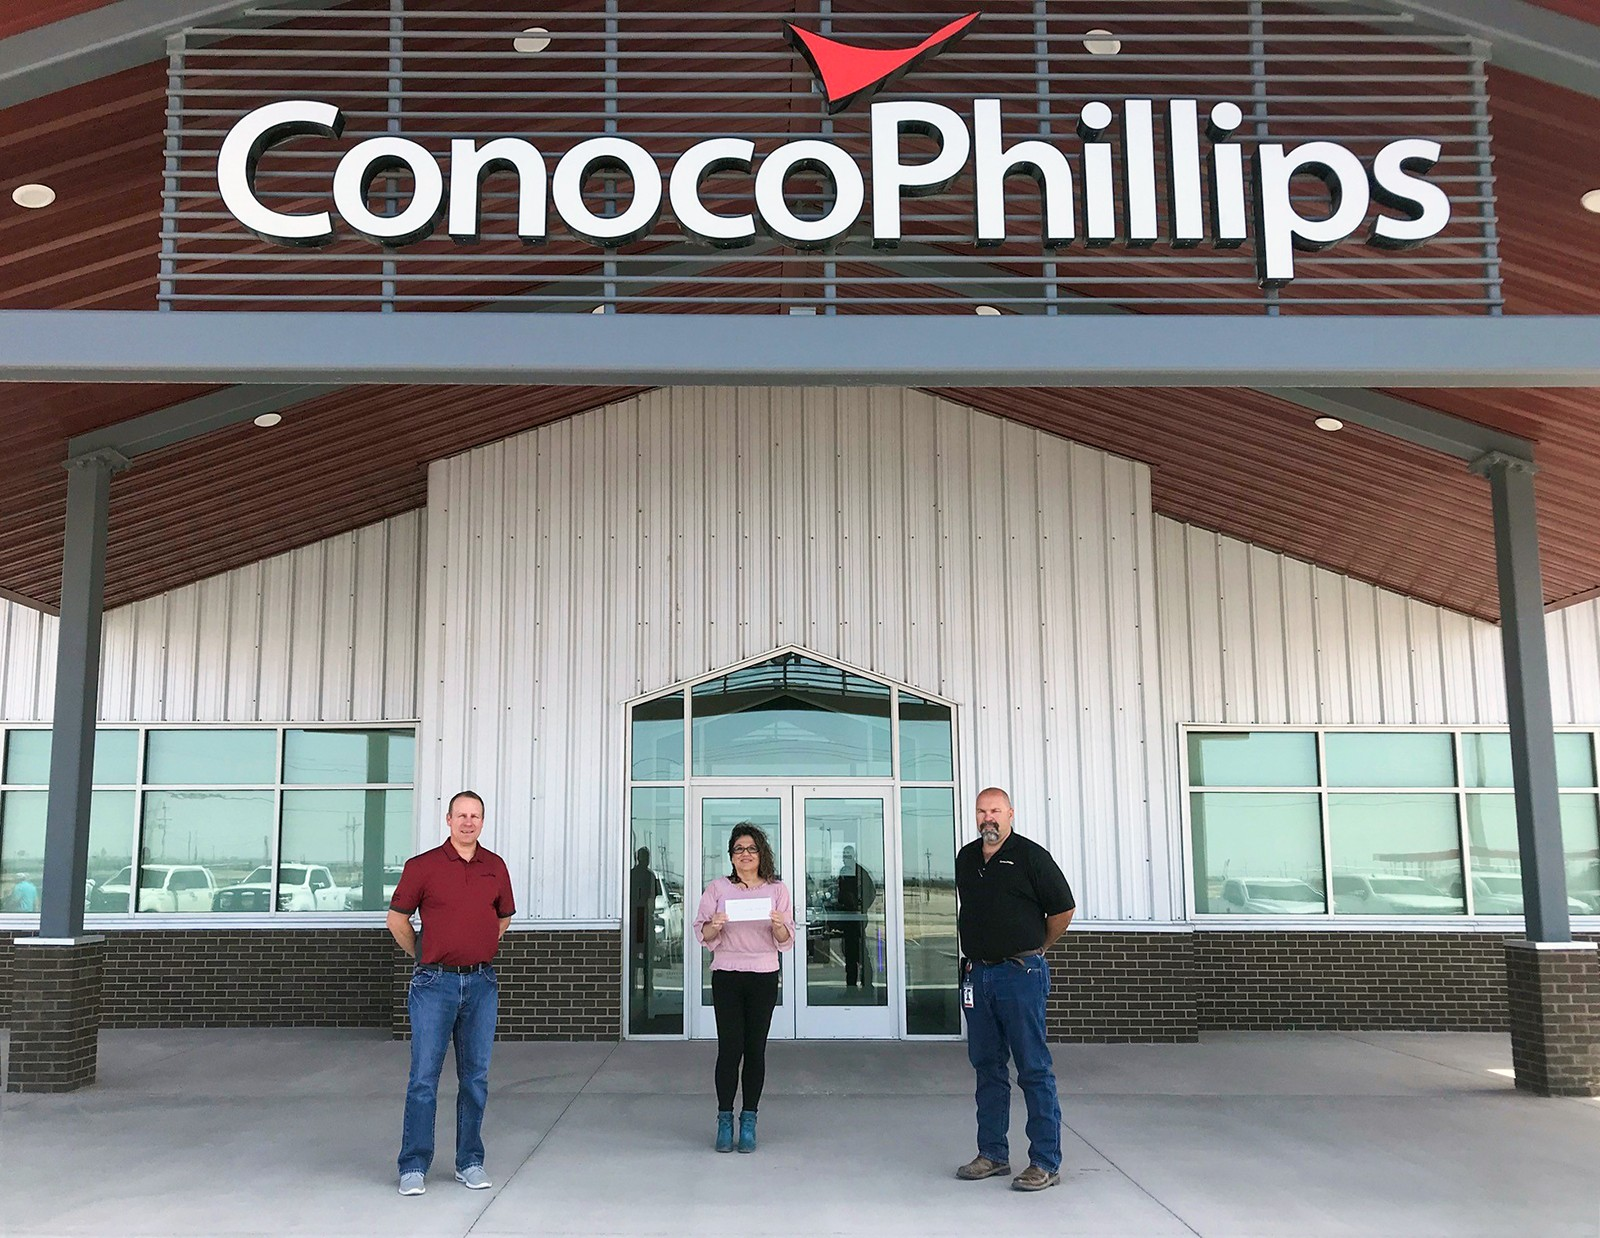 Three people standing outside entrance of ConocoPhillips New Mexico office